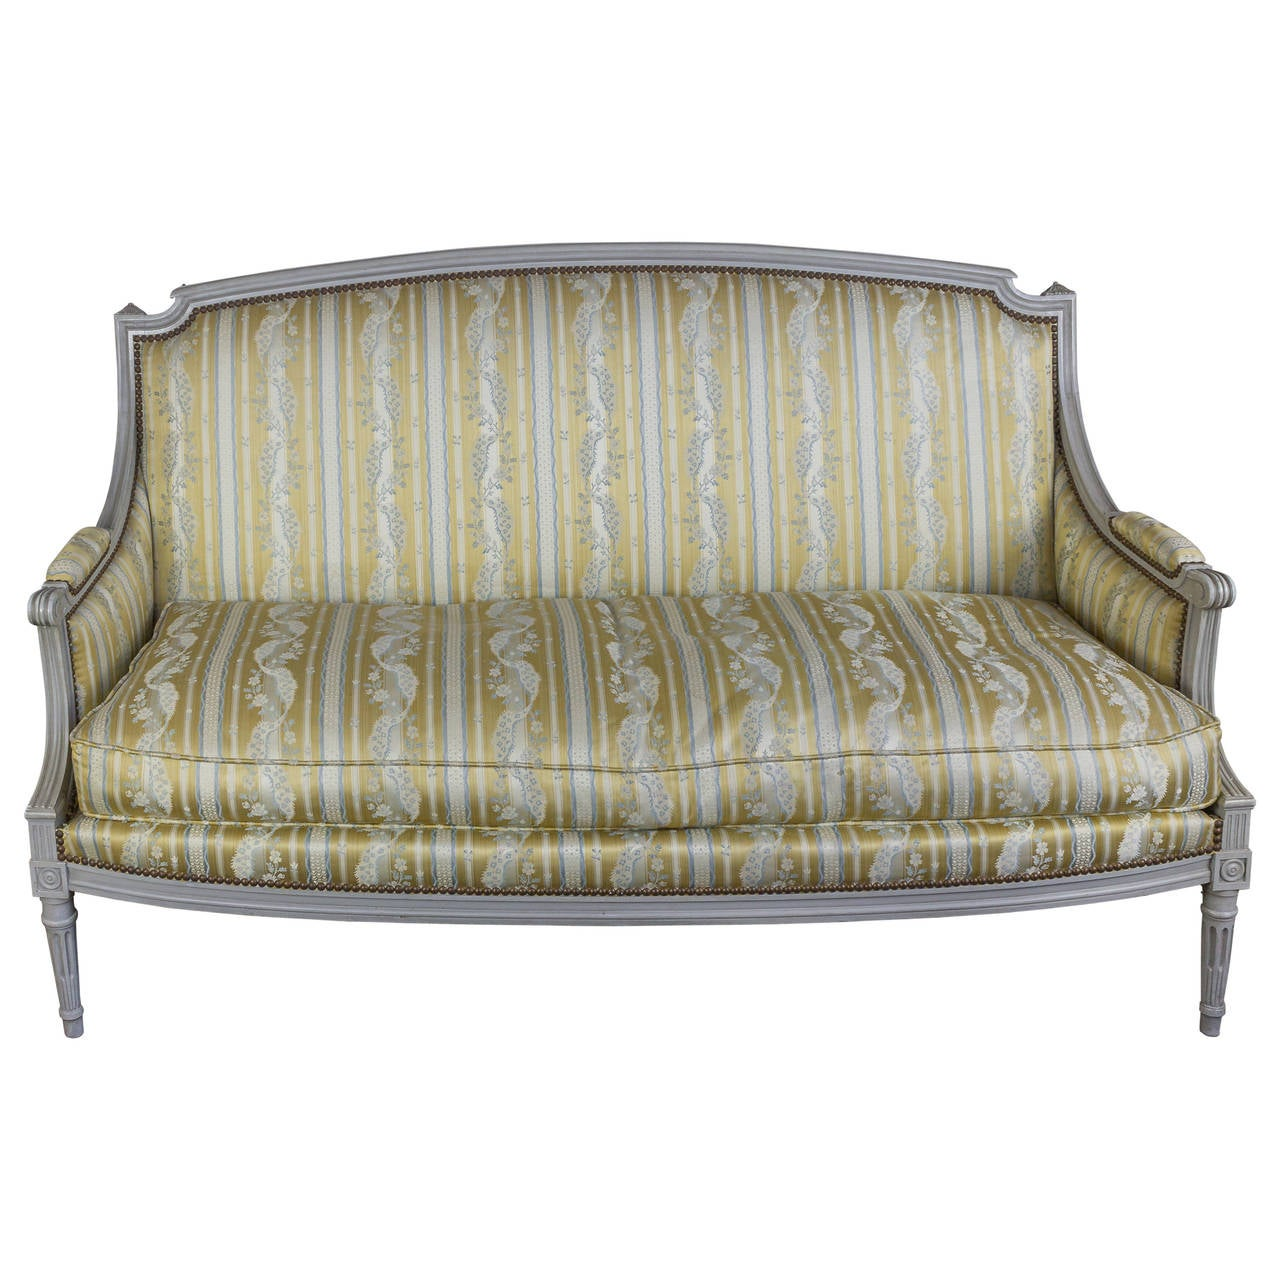 French Louis XVI Style Sofa with Painted Carved Frame